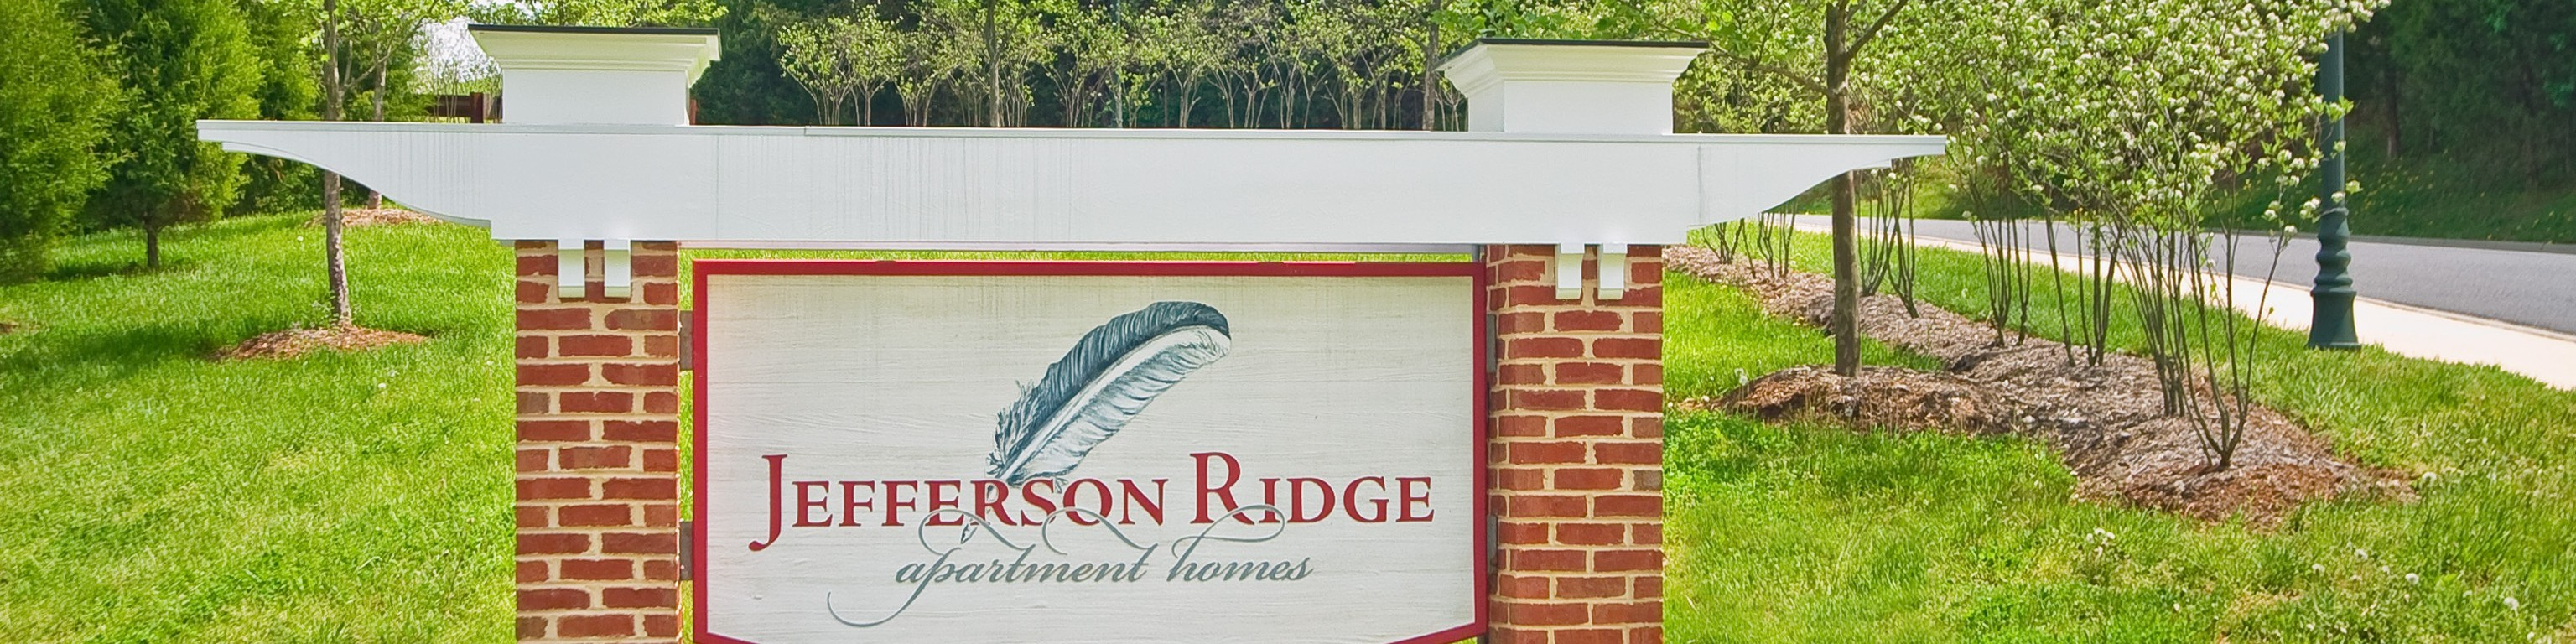 Jefferson-Ridge-24-e1413413700526